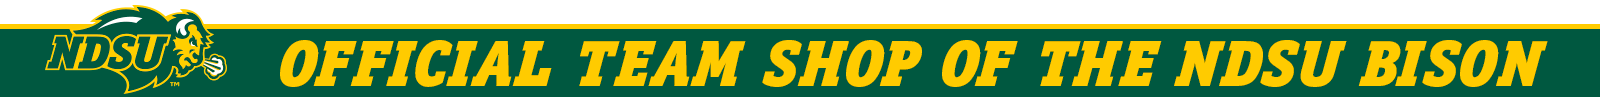 Official Team Shop of the NDSU Bison